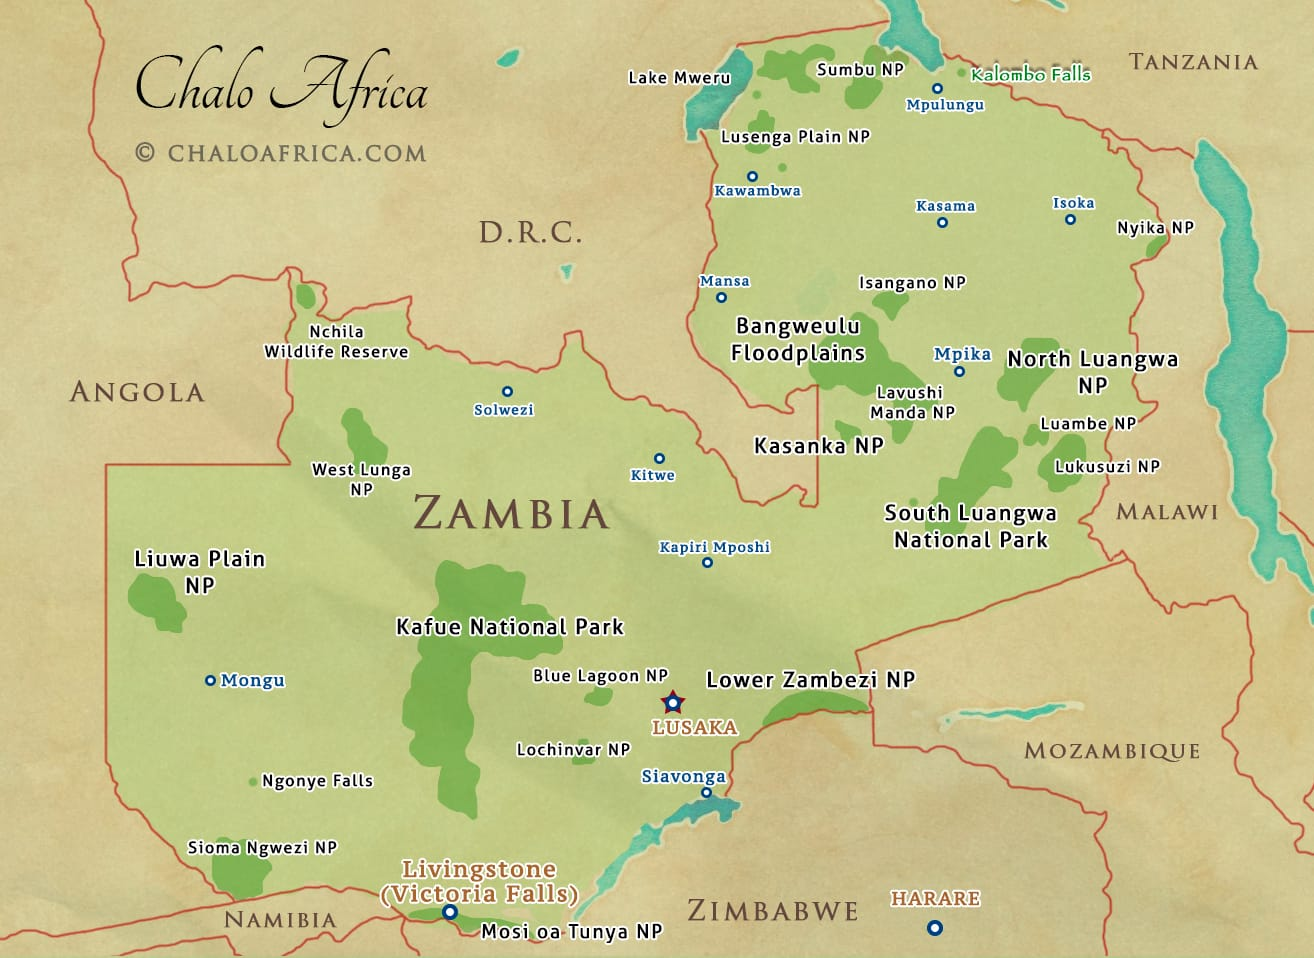 Zambia Safari Map - Chalo Africa